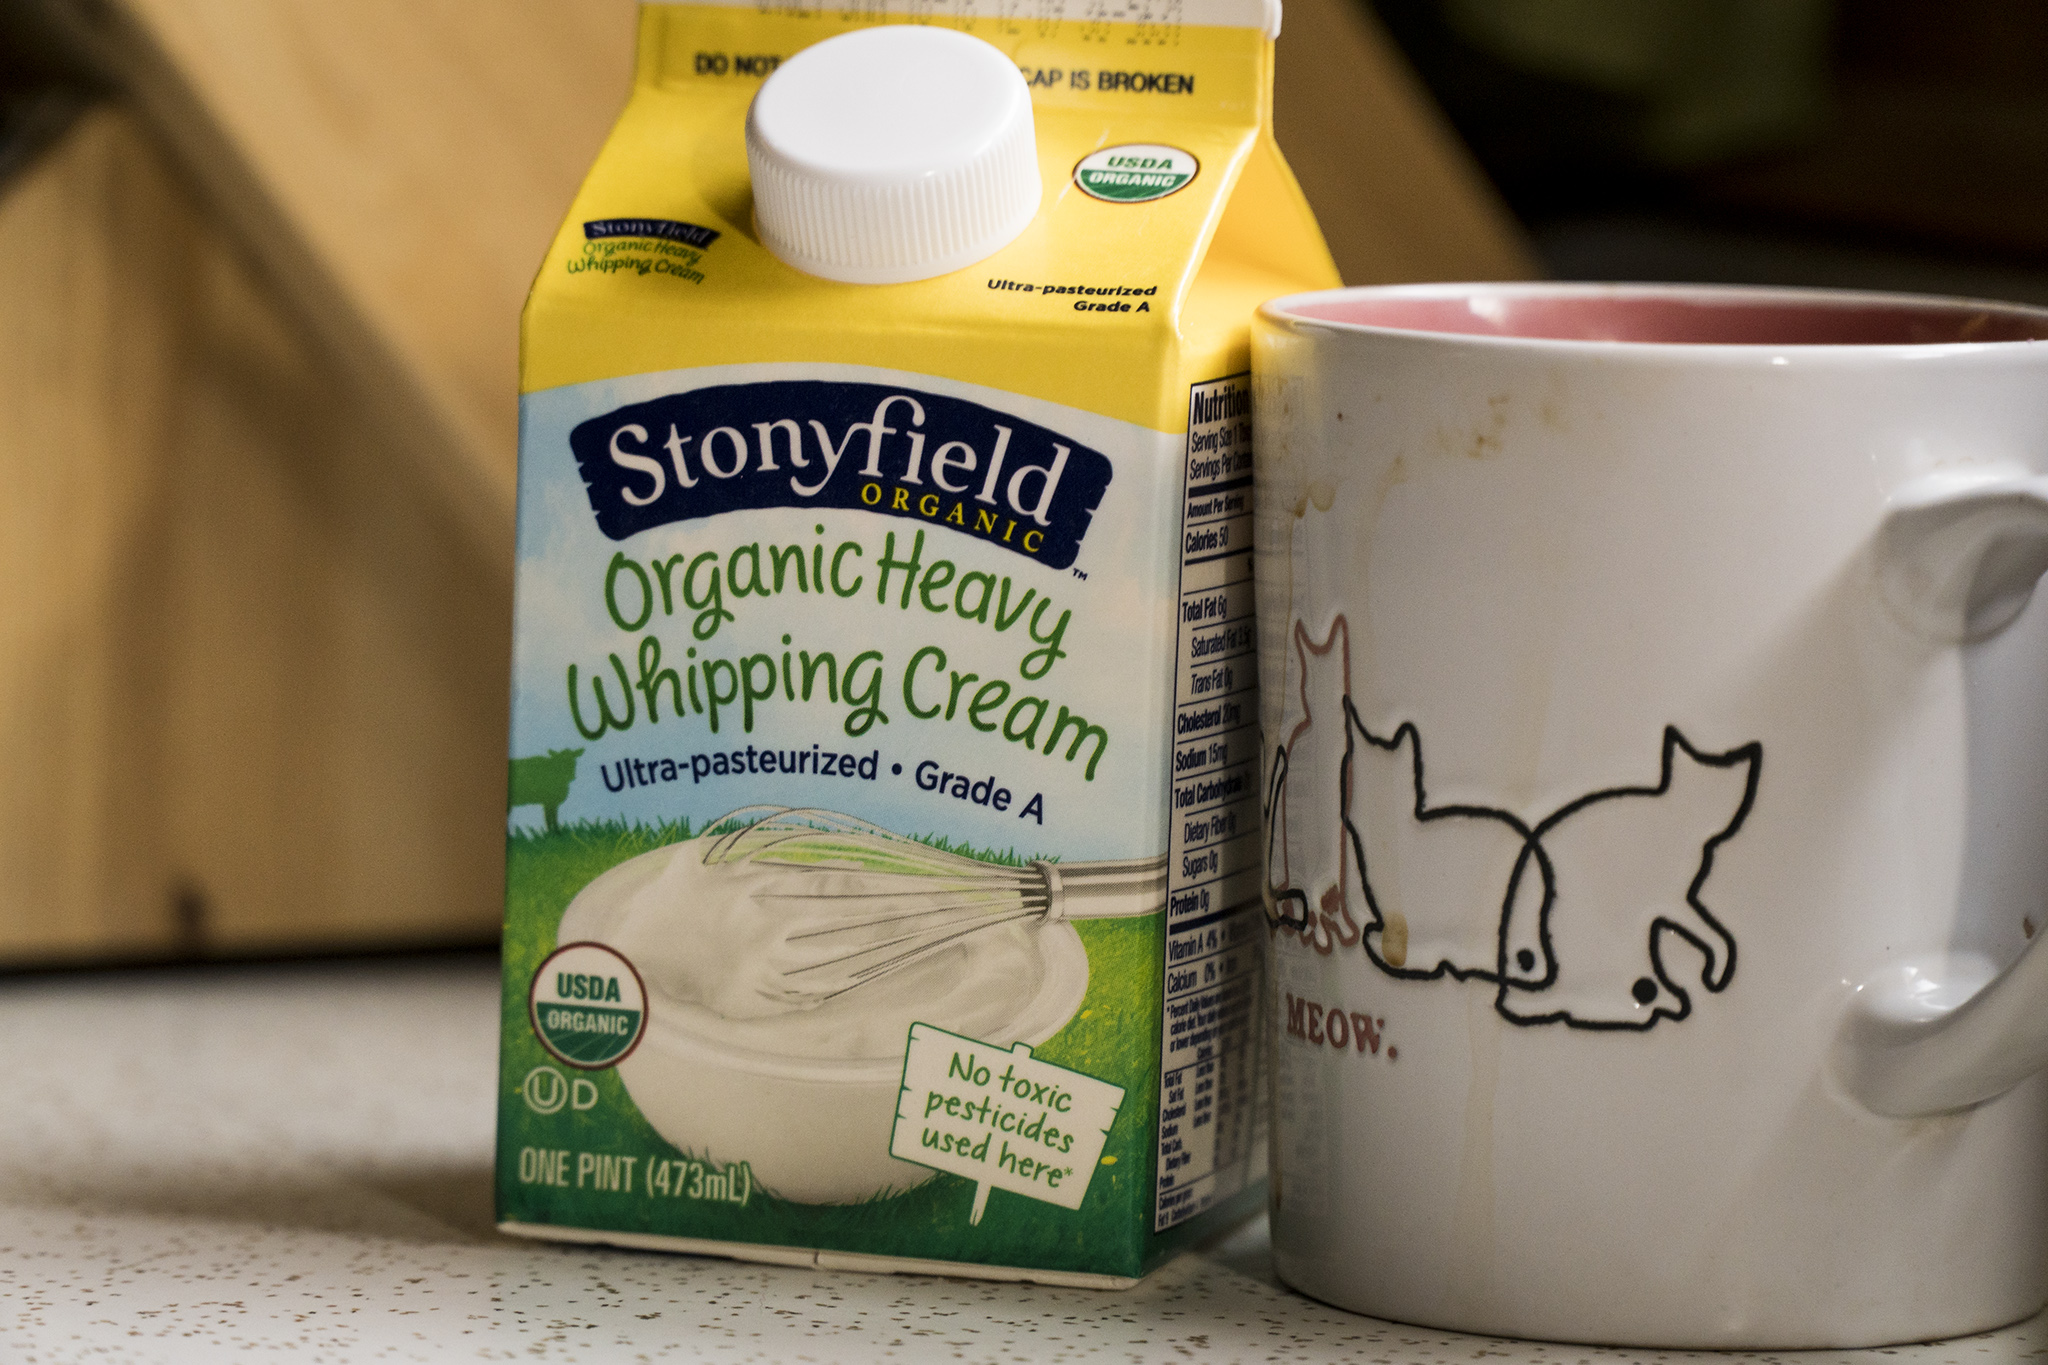 Can you survive on just heavy cream for 7 days???